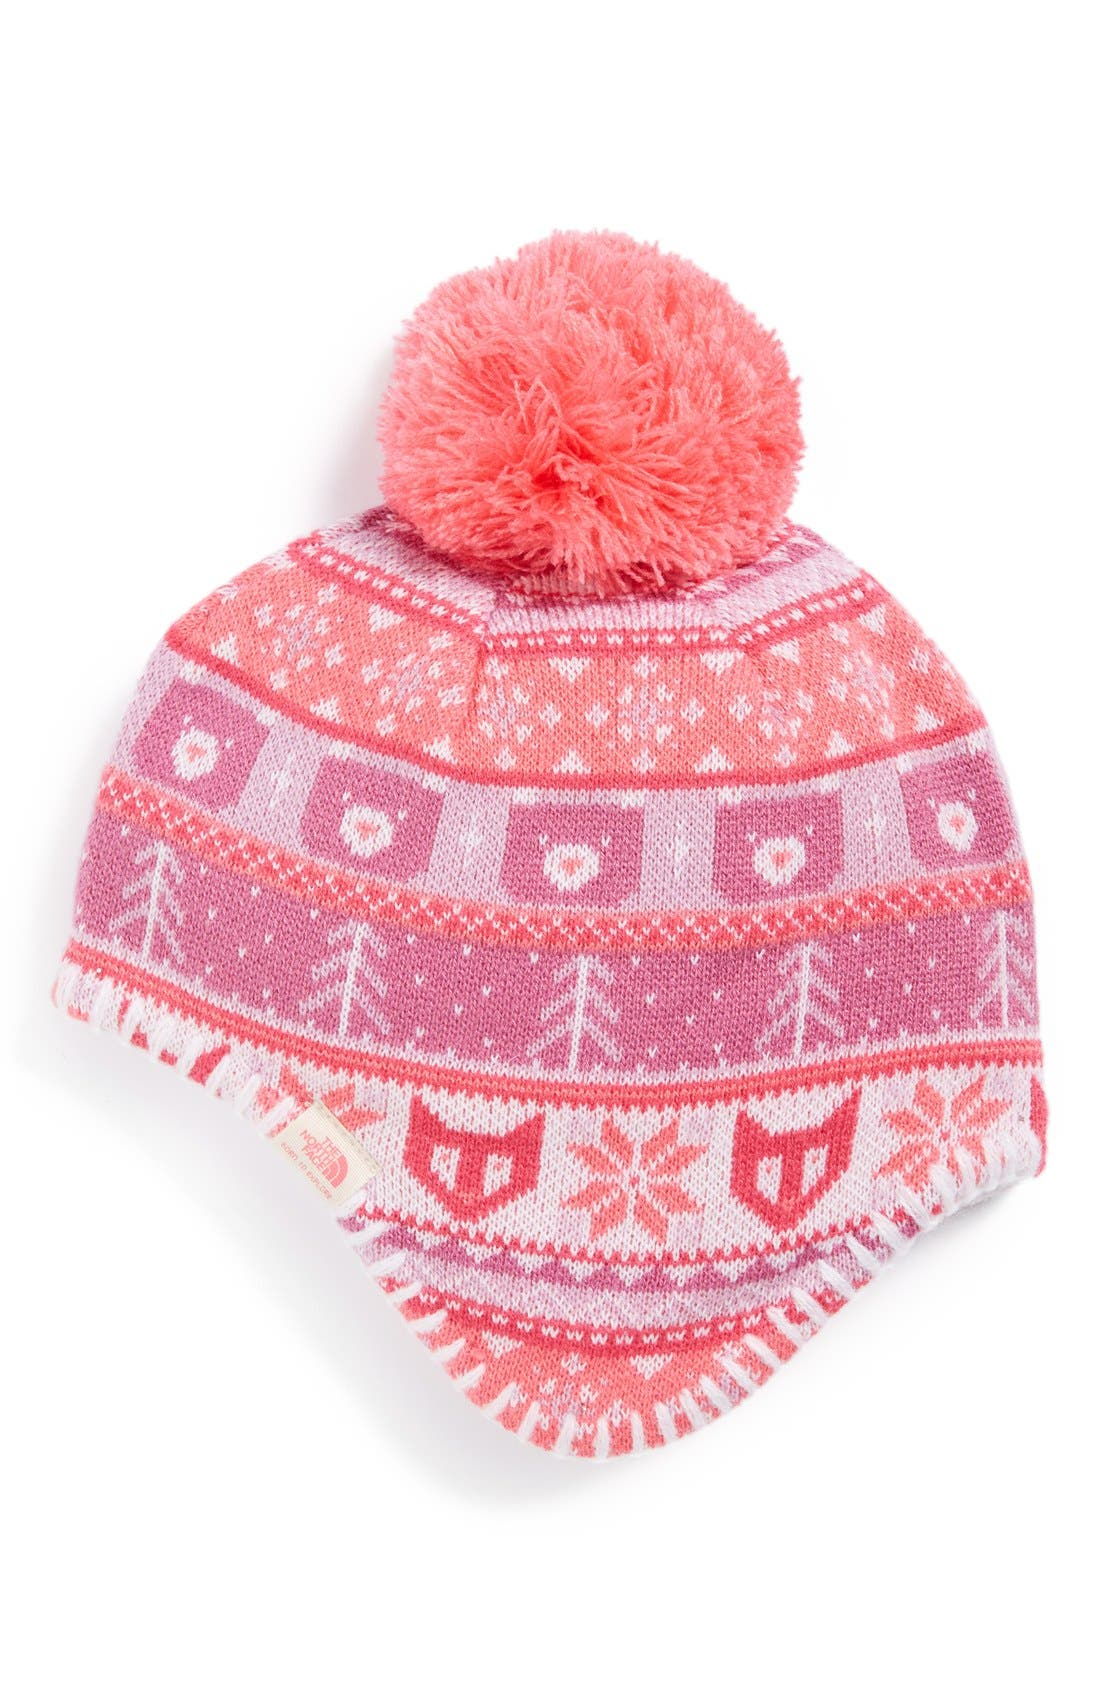 Alternate Image 1 Selected - The North Face Faroe Beanie (Baby)